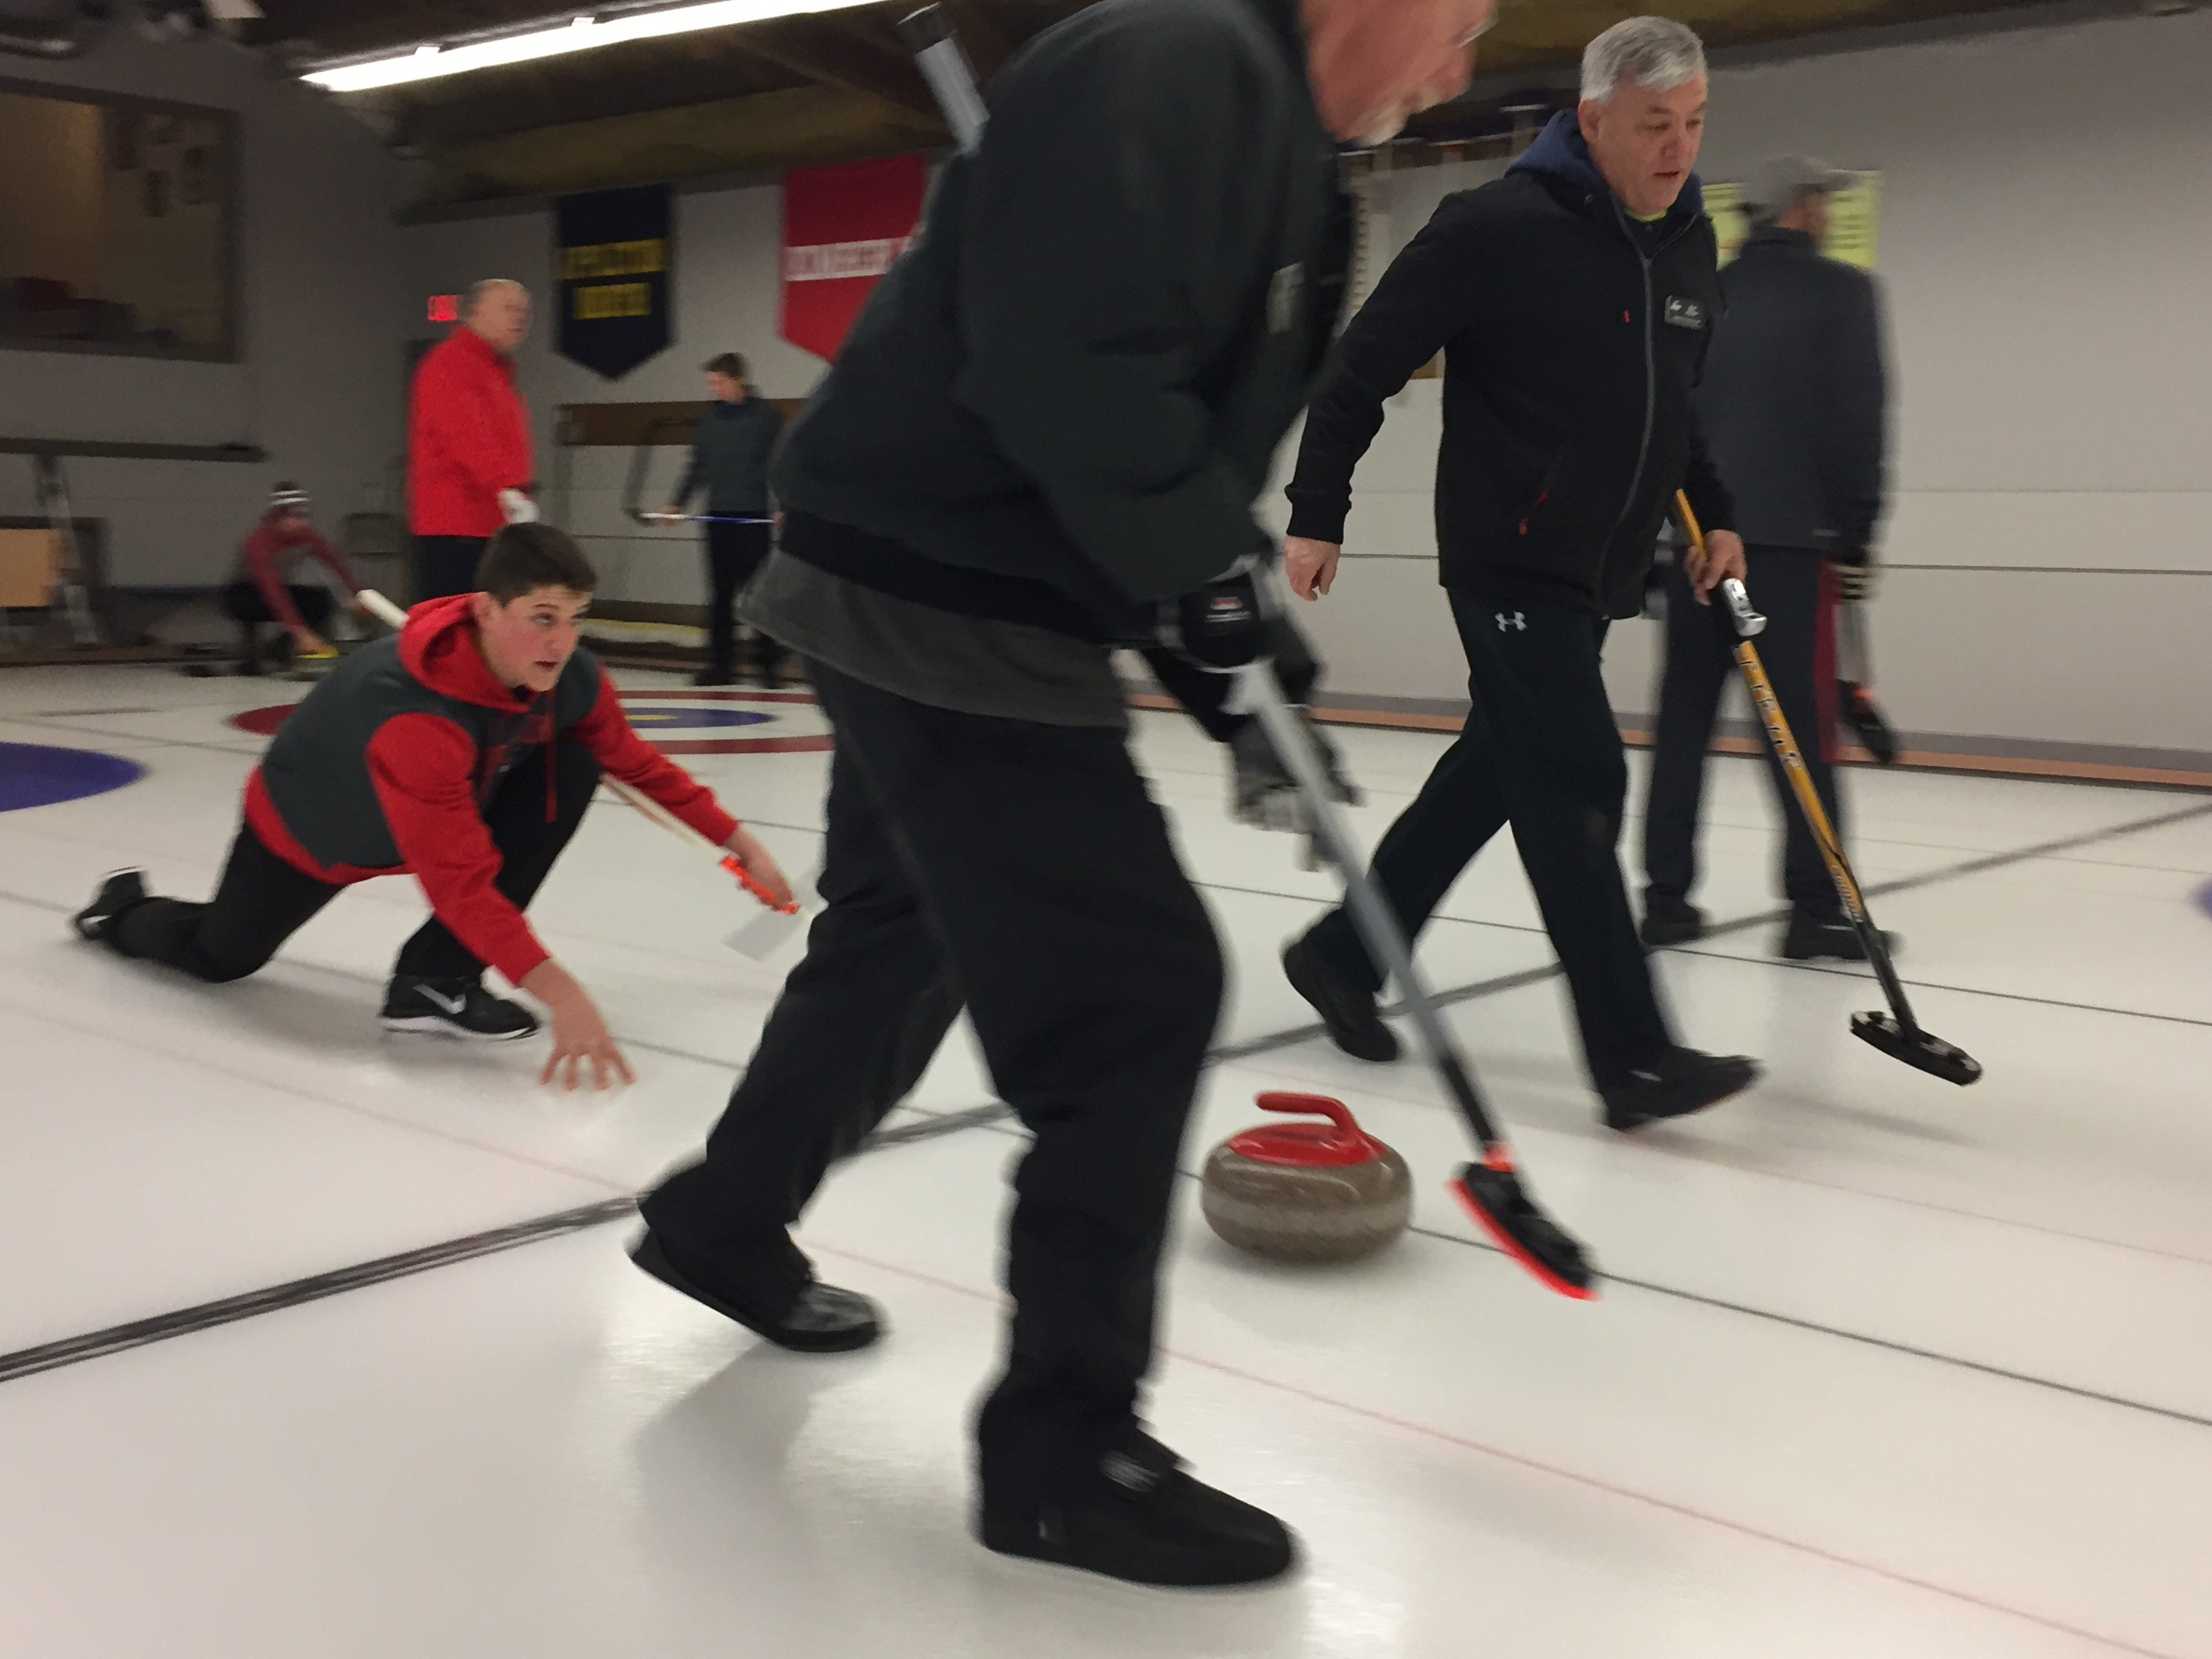 Justin Steinbrinck joined us live giving a preview of the Appleton Curling Club, February 8, 2018, (WLUK/Justin Steinbrinck)<p></p>